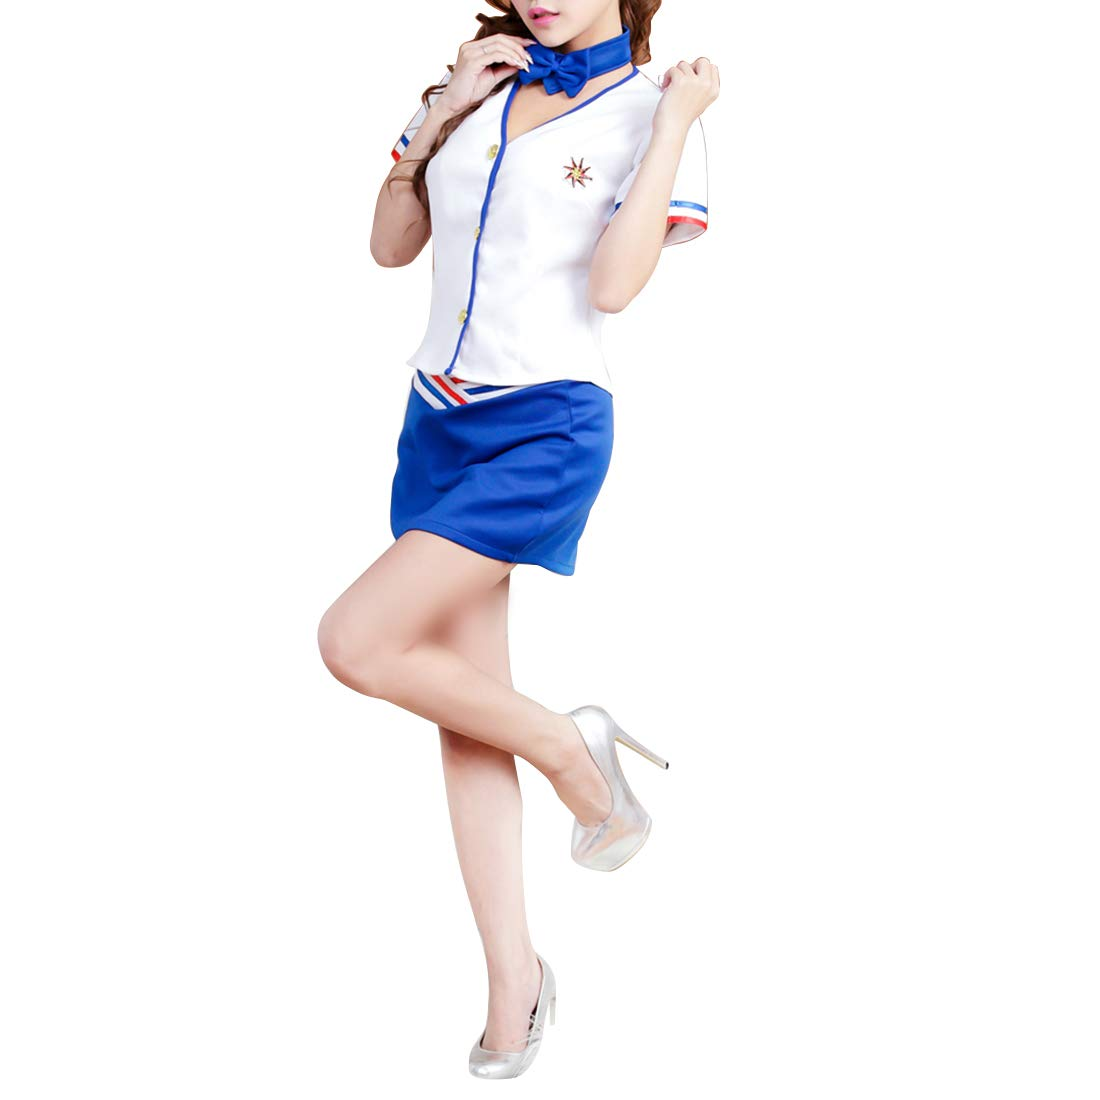 KirinArt Lencería Sexy Temperamento, Azafata Suit Sailor Suit Azafata OL Uniforme (Color : azul) a38327